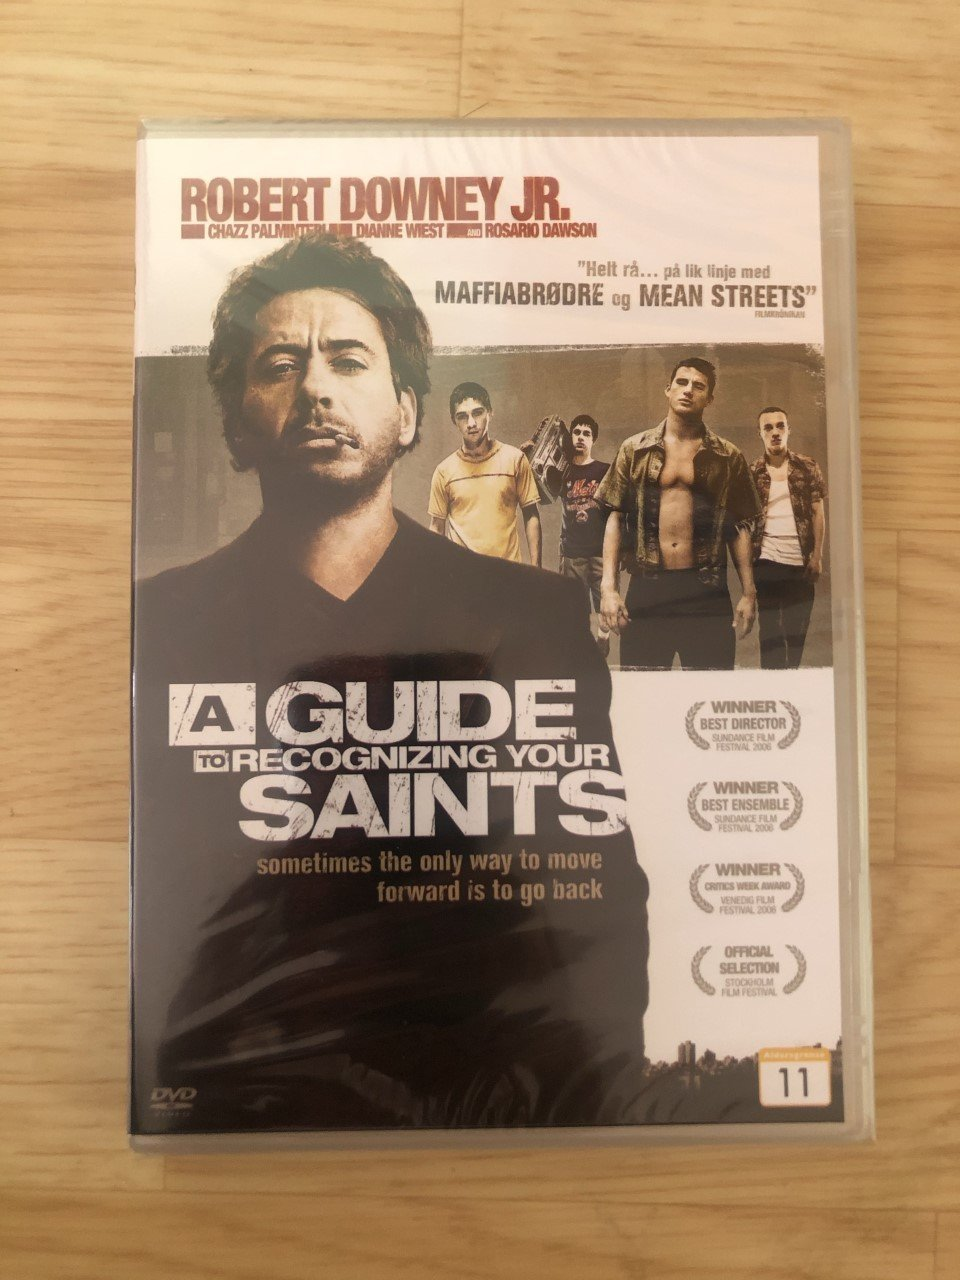 A Guide To Recognizing Your Saints (Robert Downey Jr.)